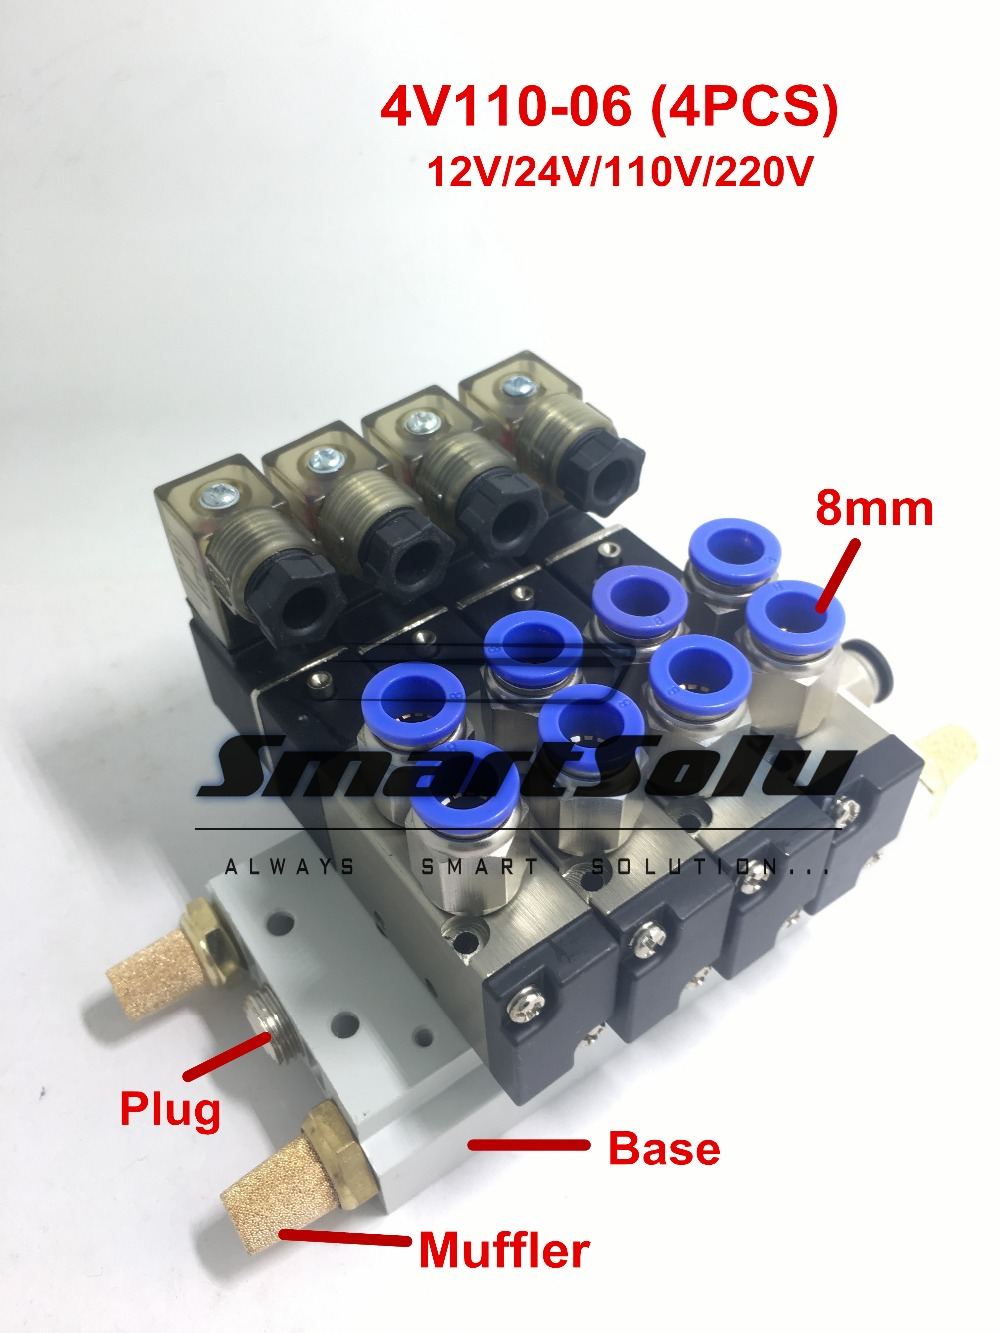 Free shipping 4V110-06 Solenoid Air Valve Set 5port 2position 1/8 BSP Connected Base Muffler Fitting 10 pcs 4v220 08 dc 12v solenoid air valve 5port 2position